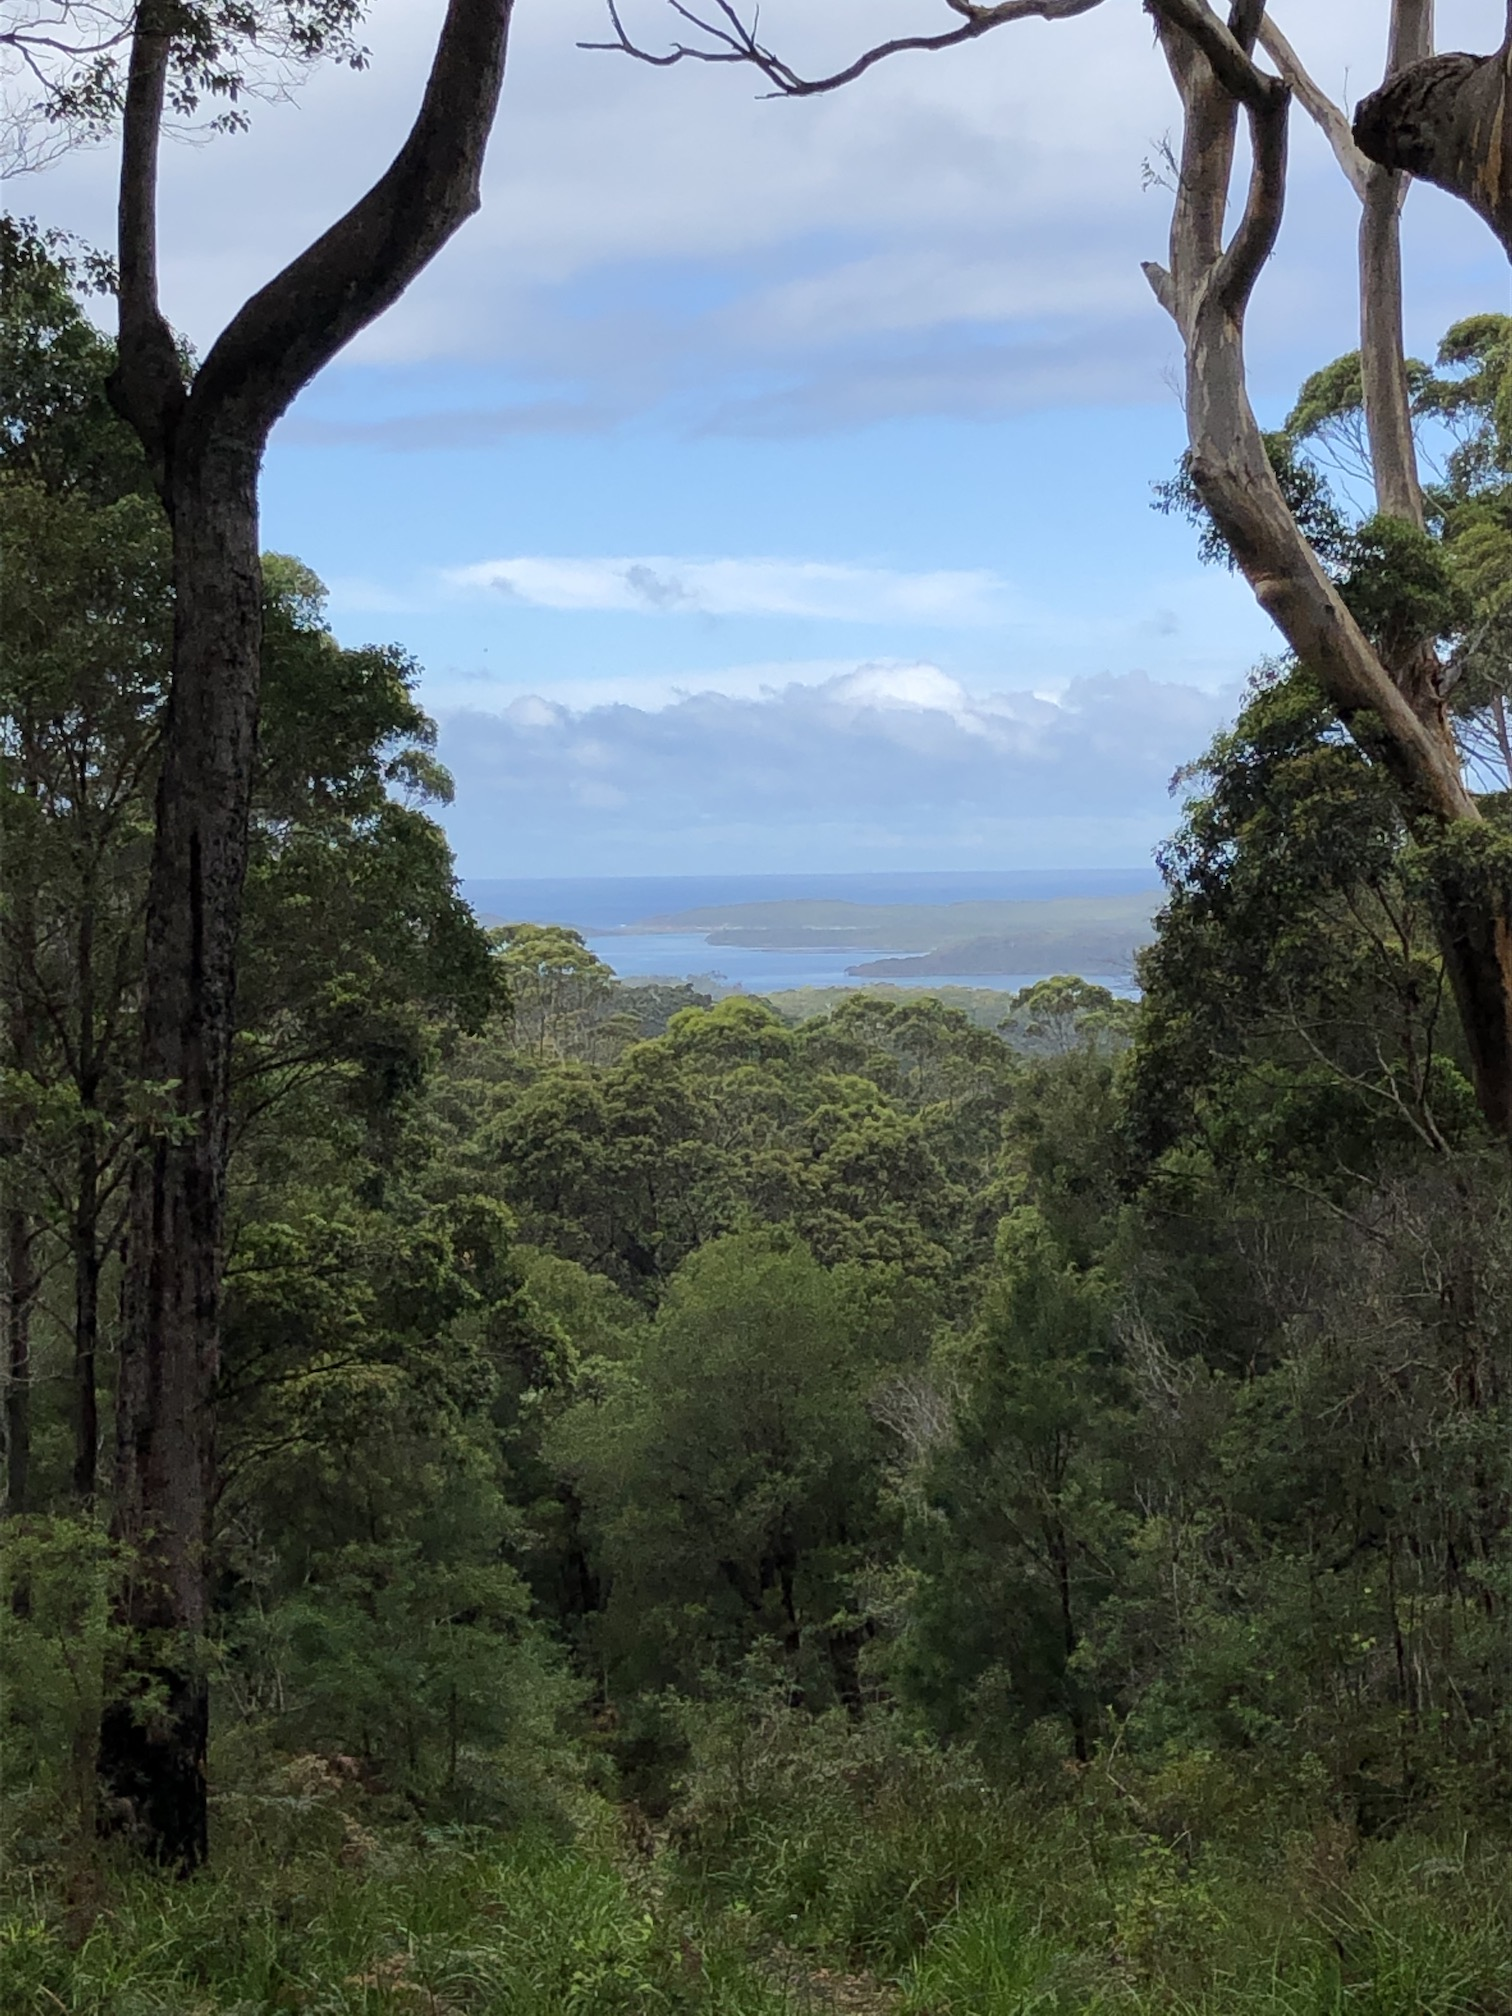 2020-03-31a View from lovely tall Gt Southern forest, over to Nornalup Inlet leading to sea